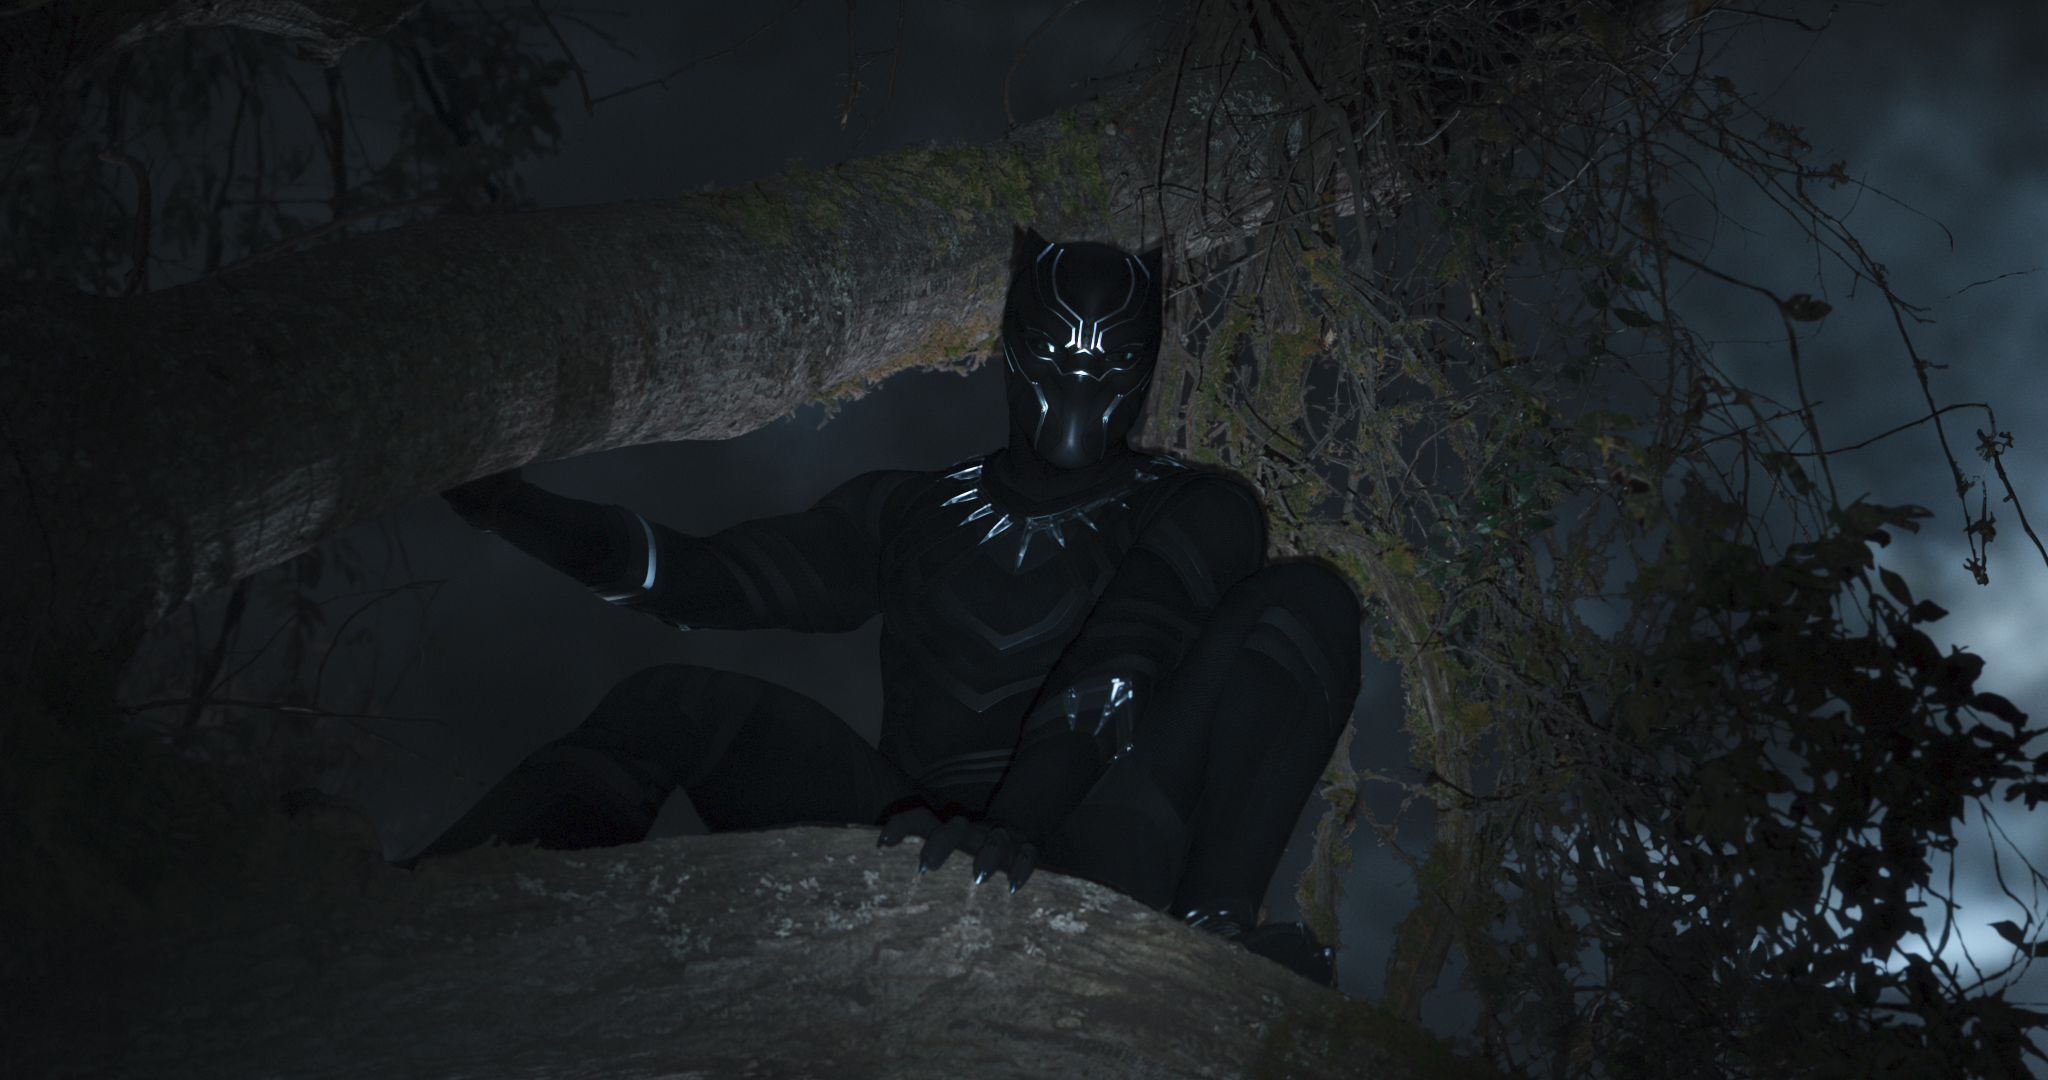 Top Black Panther images 'Black Panther' Promotional Still HD  DI05